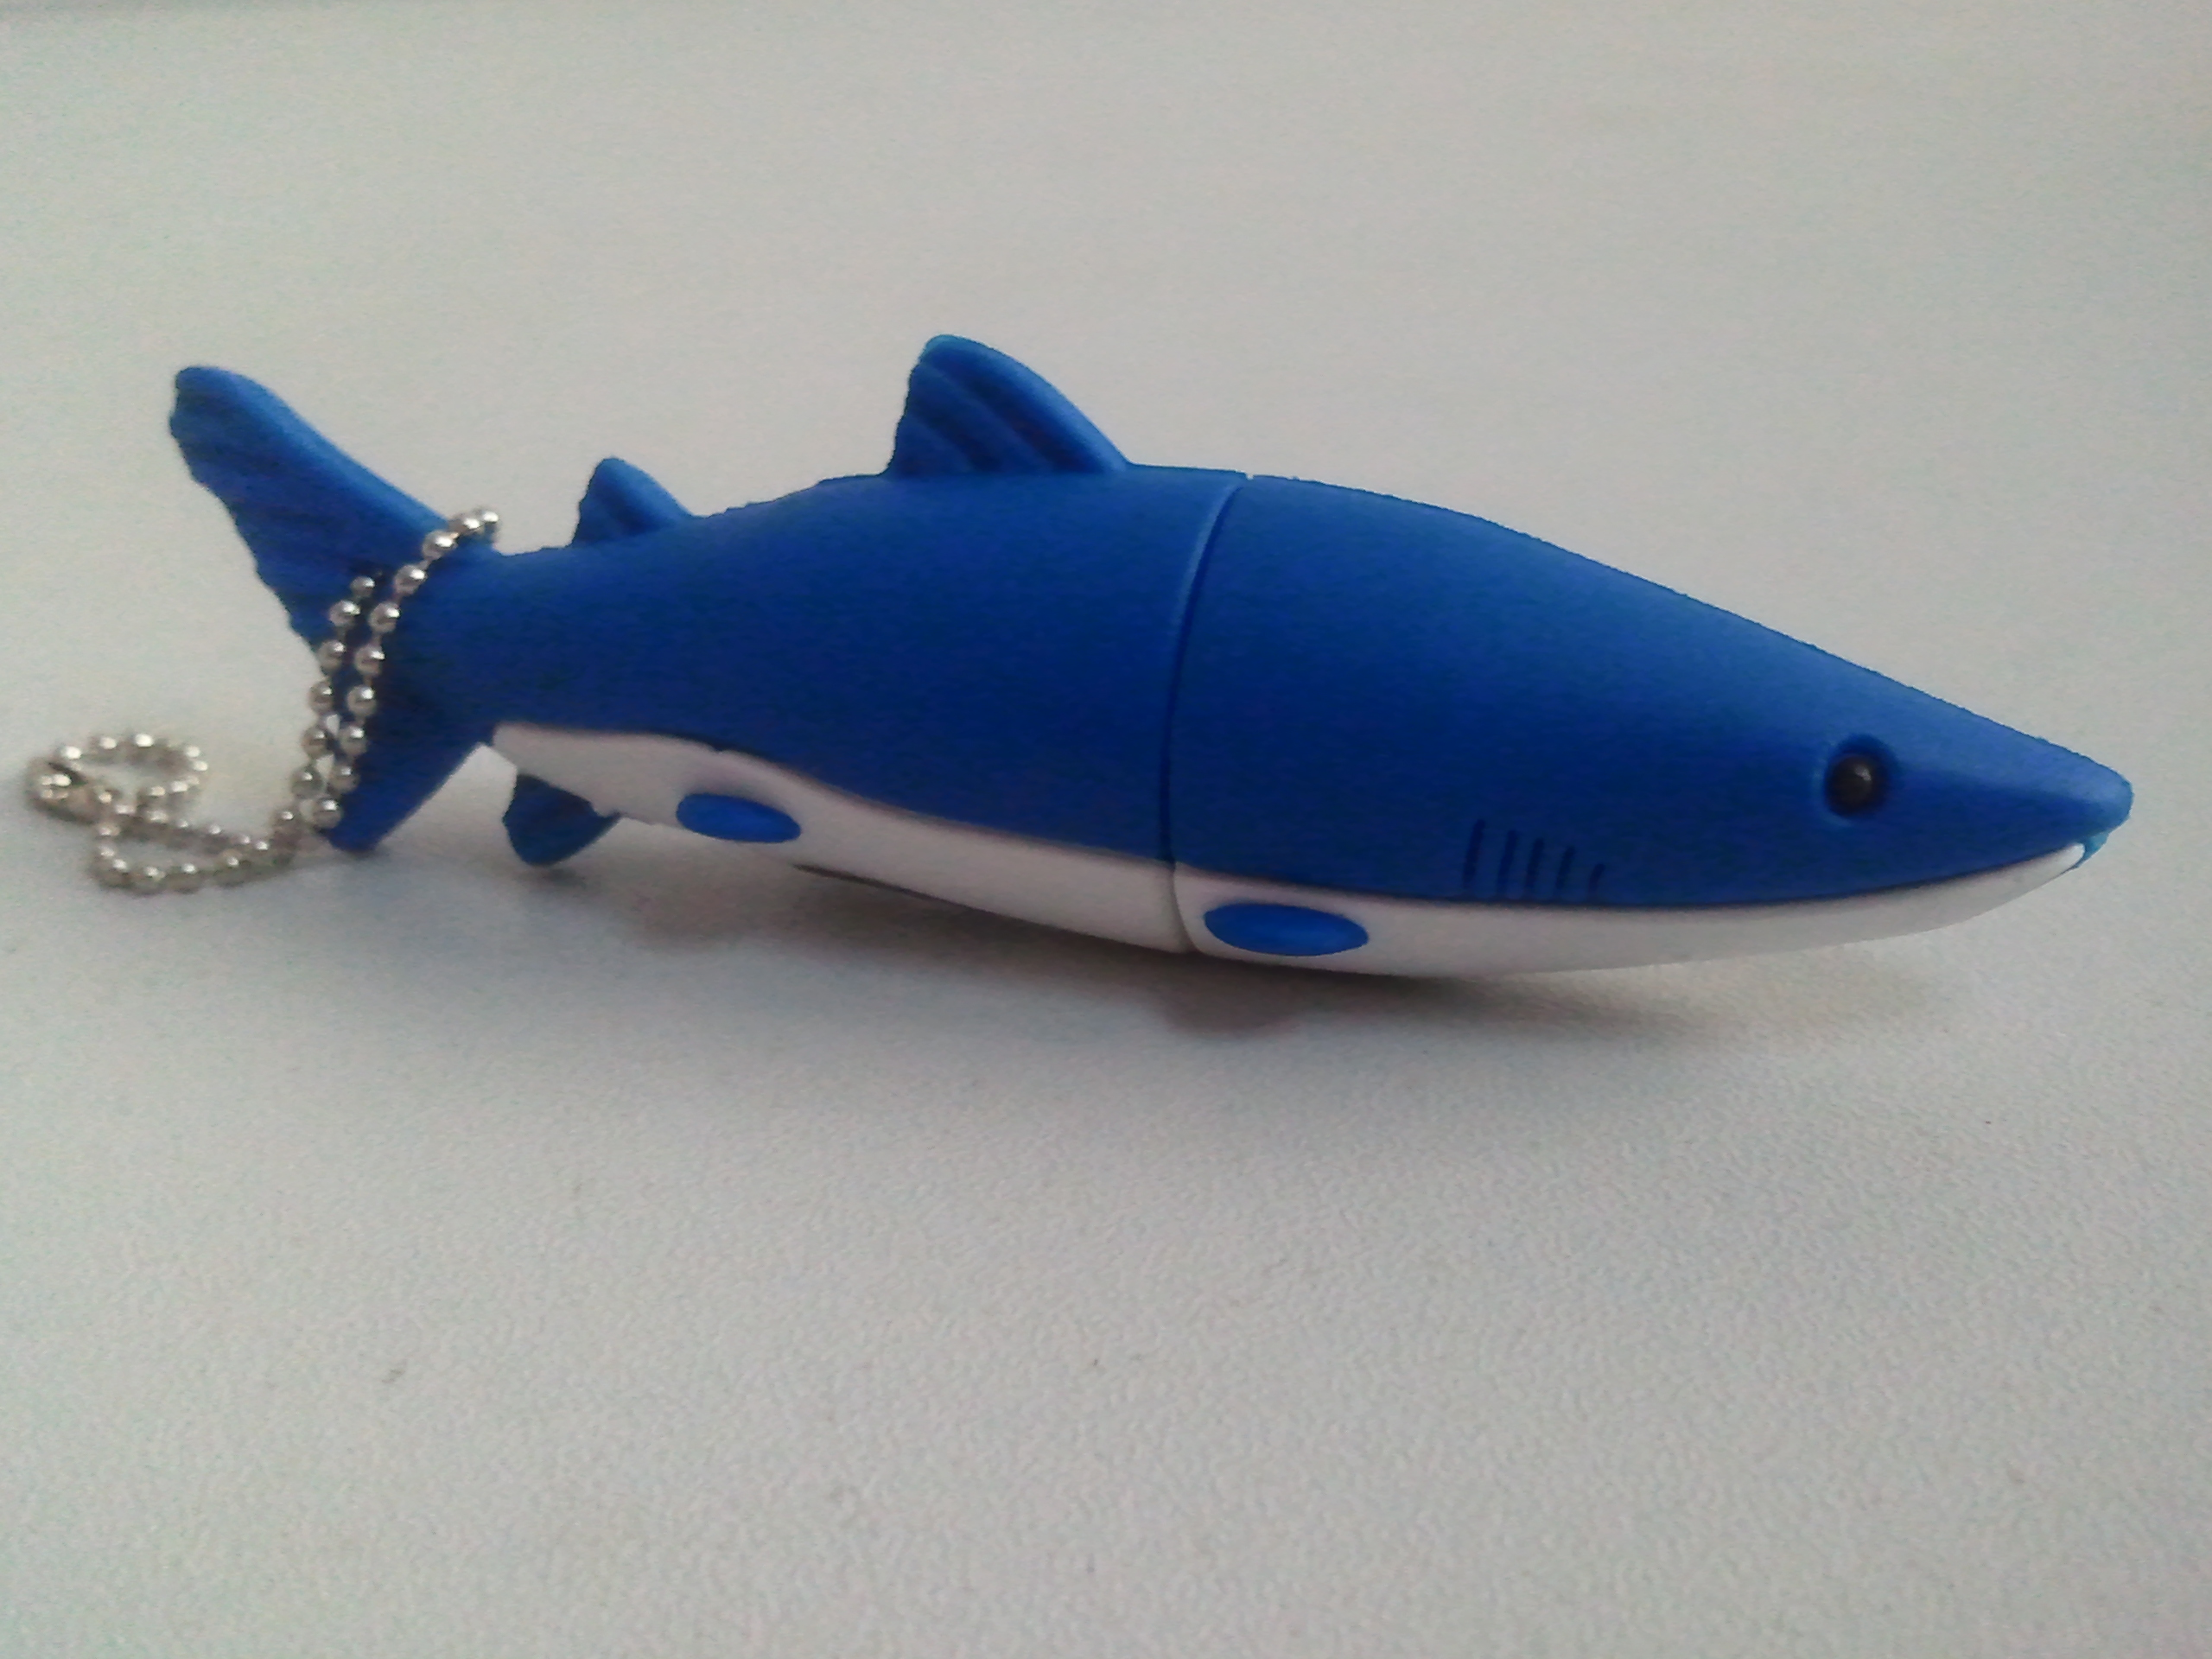 8GB Cartoon Shark USB Flash Drive